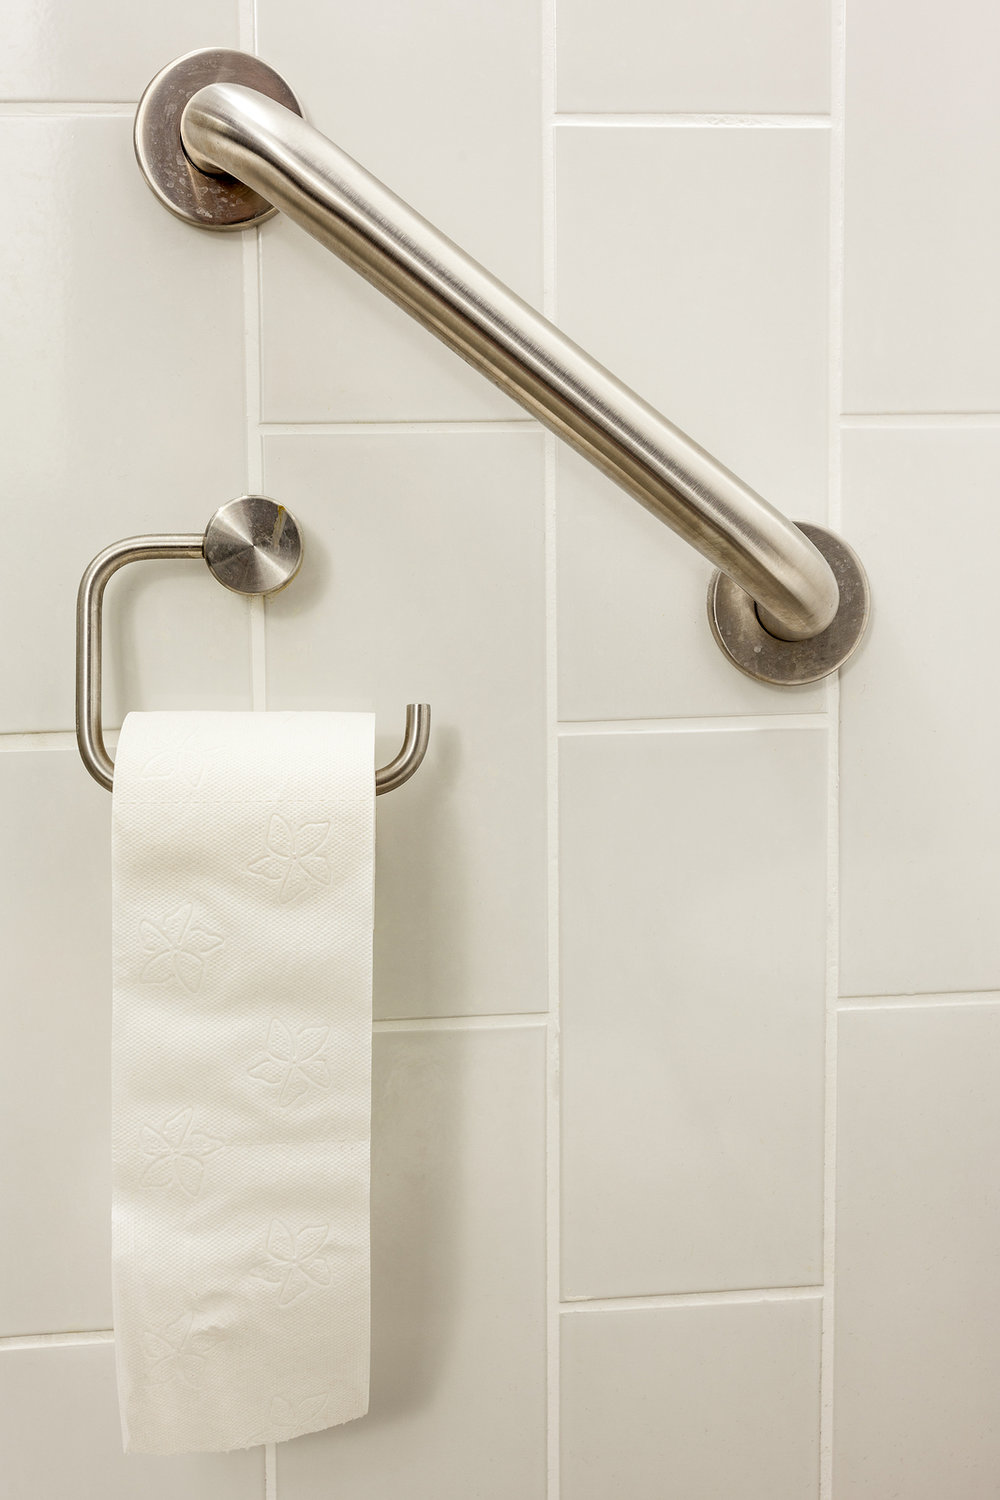 Designer Grab Bars — Adaptive Home Services